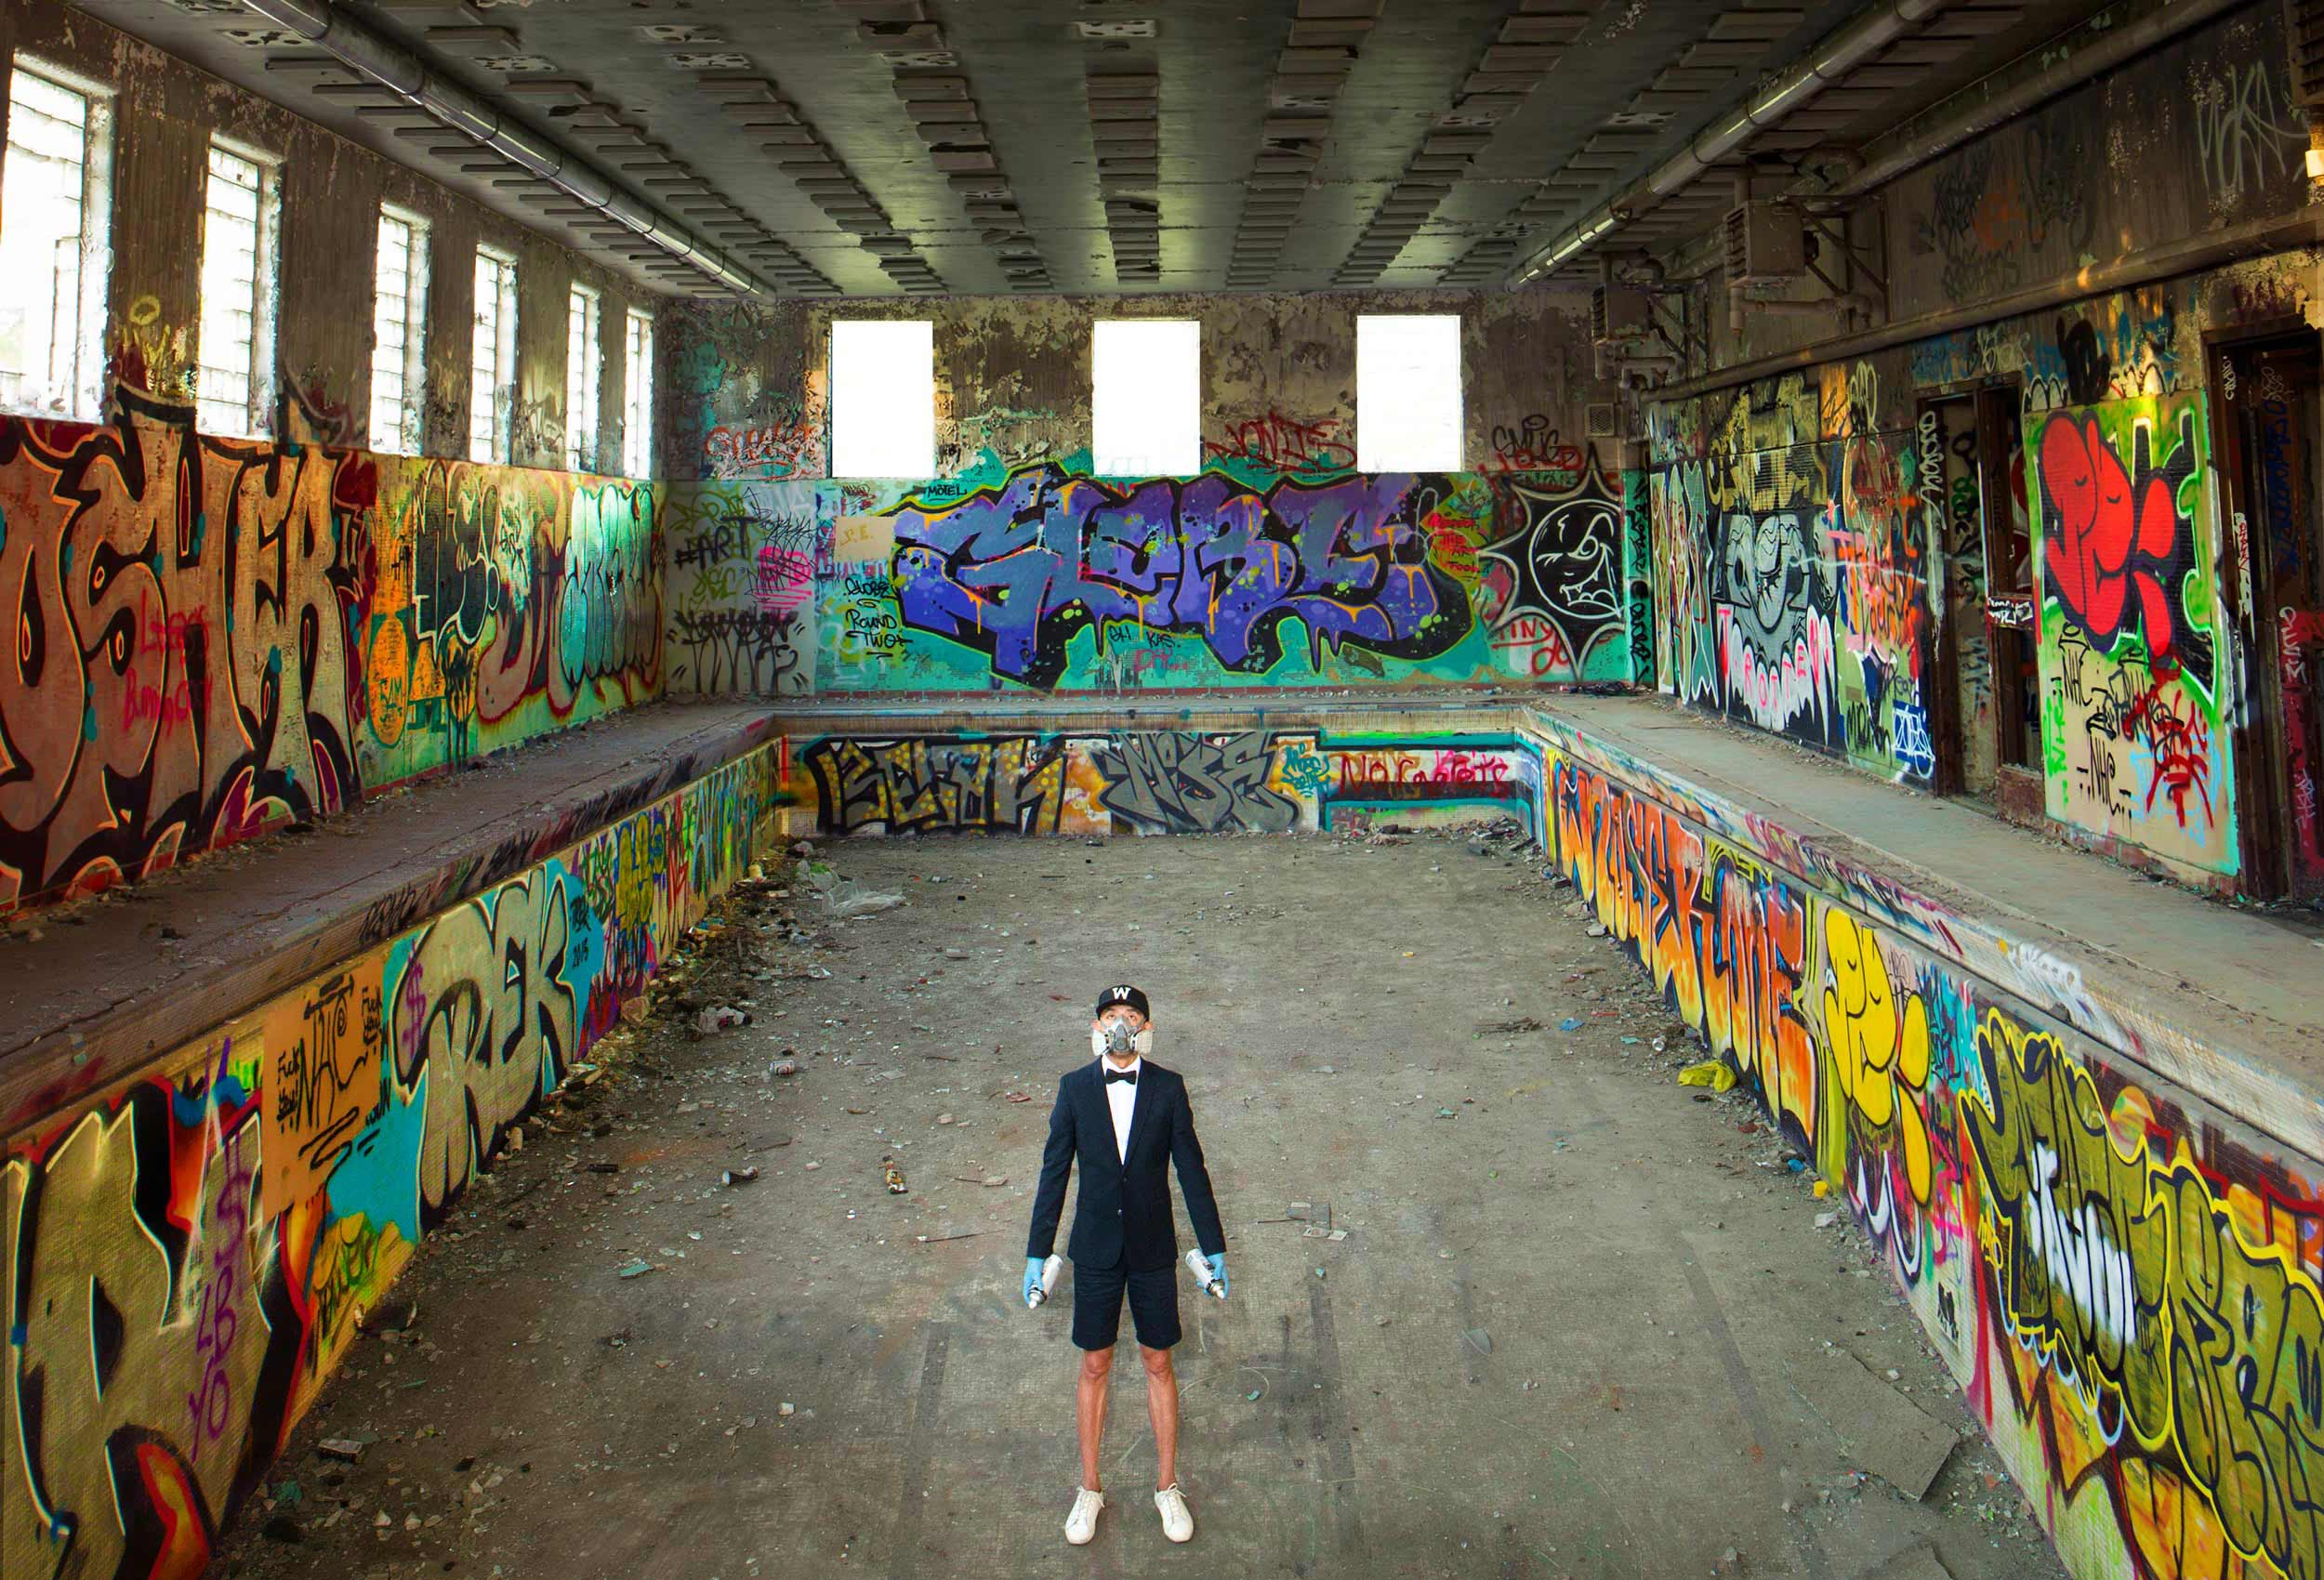 a graffitti artist poses in an empty swimming pool in toronto